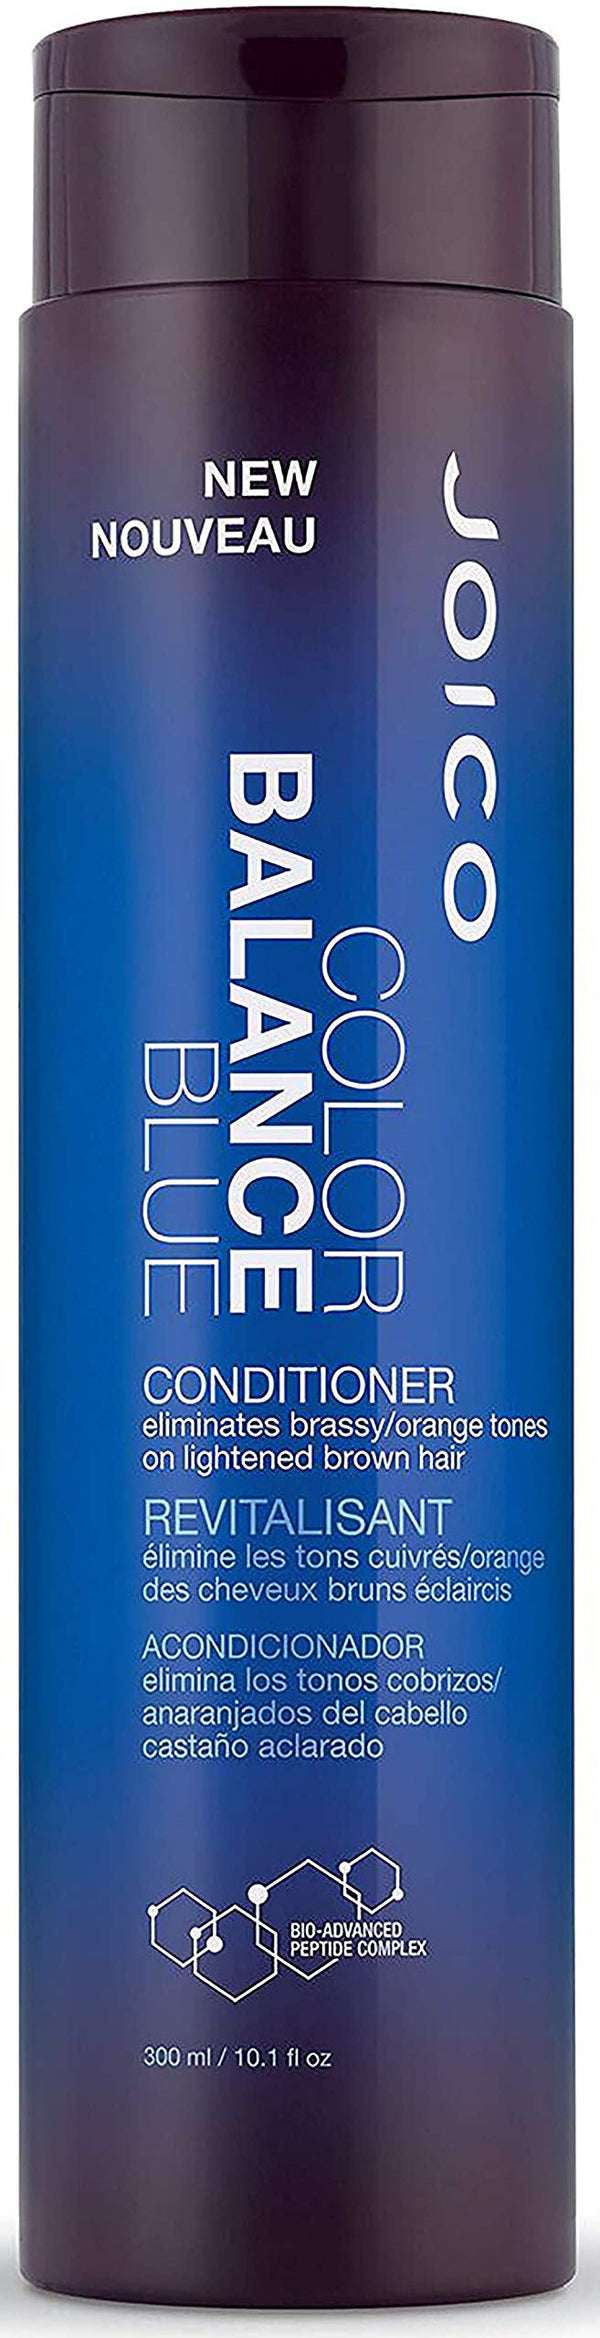 Joico Color Balance Blue Conditioner Neutralize Brassy Tones